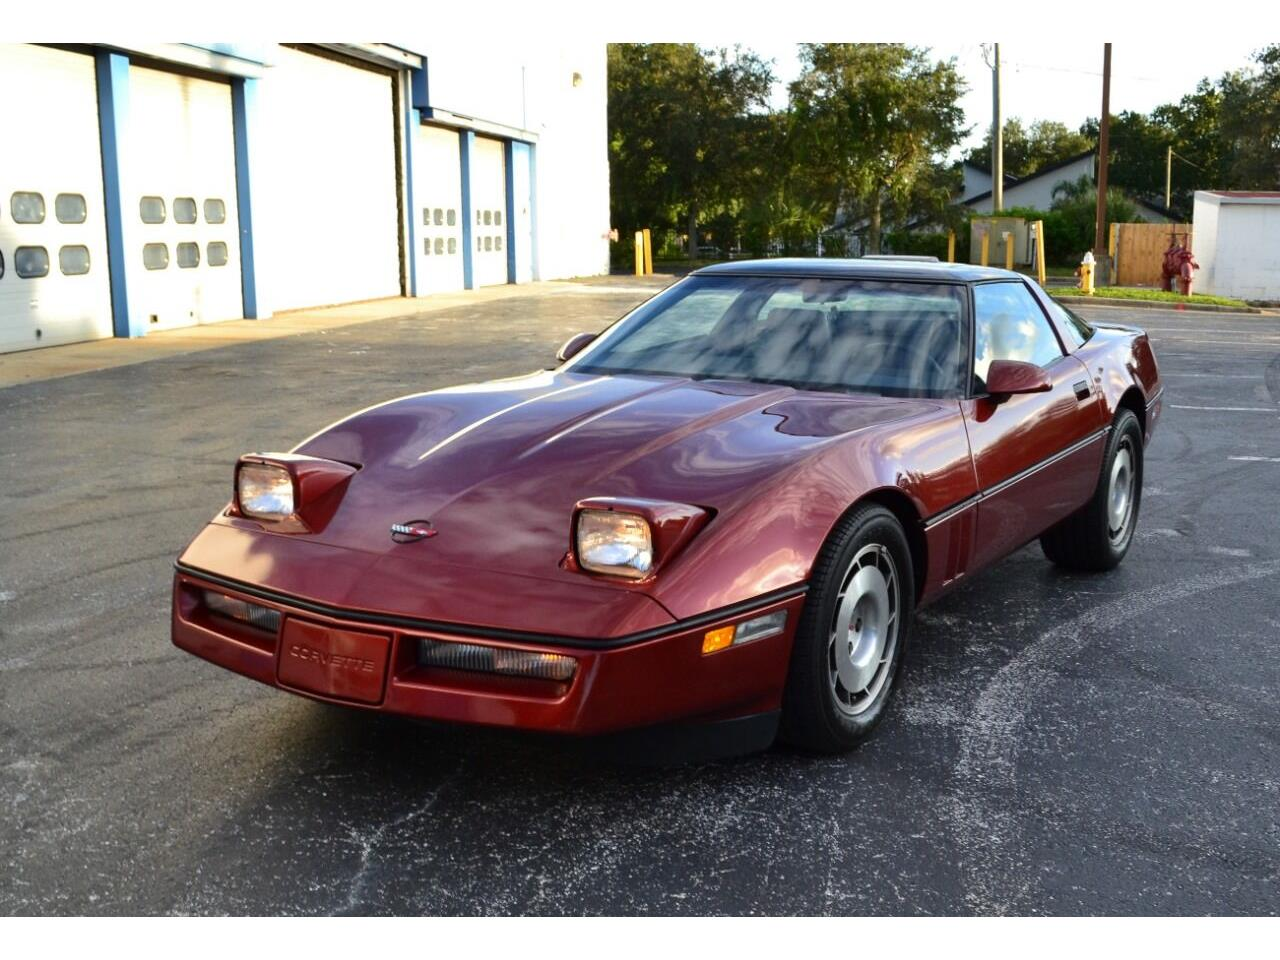 1986 Chevrolet Corvette (CC-1392862) for sale in Clearwater, Florida